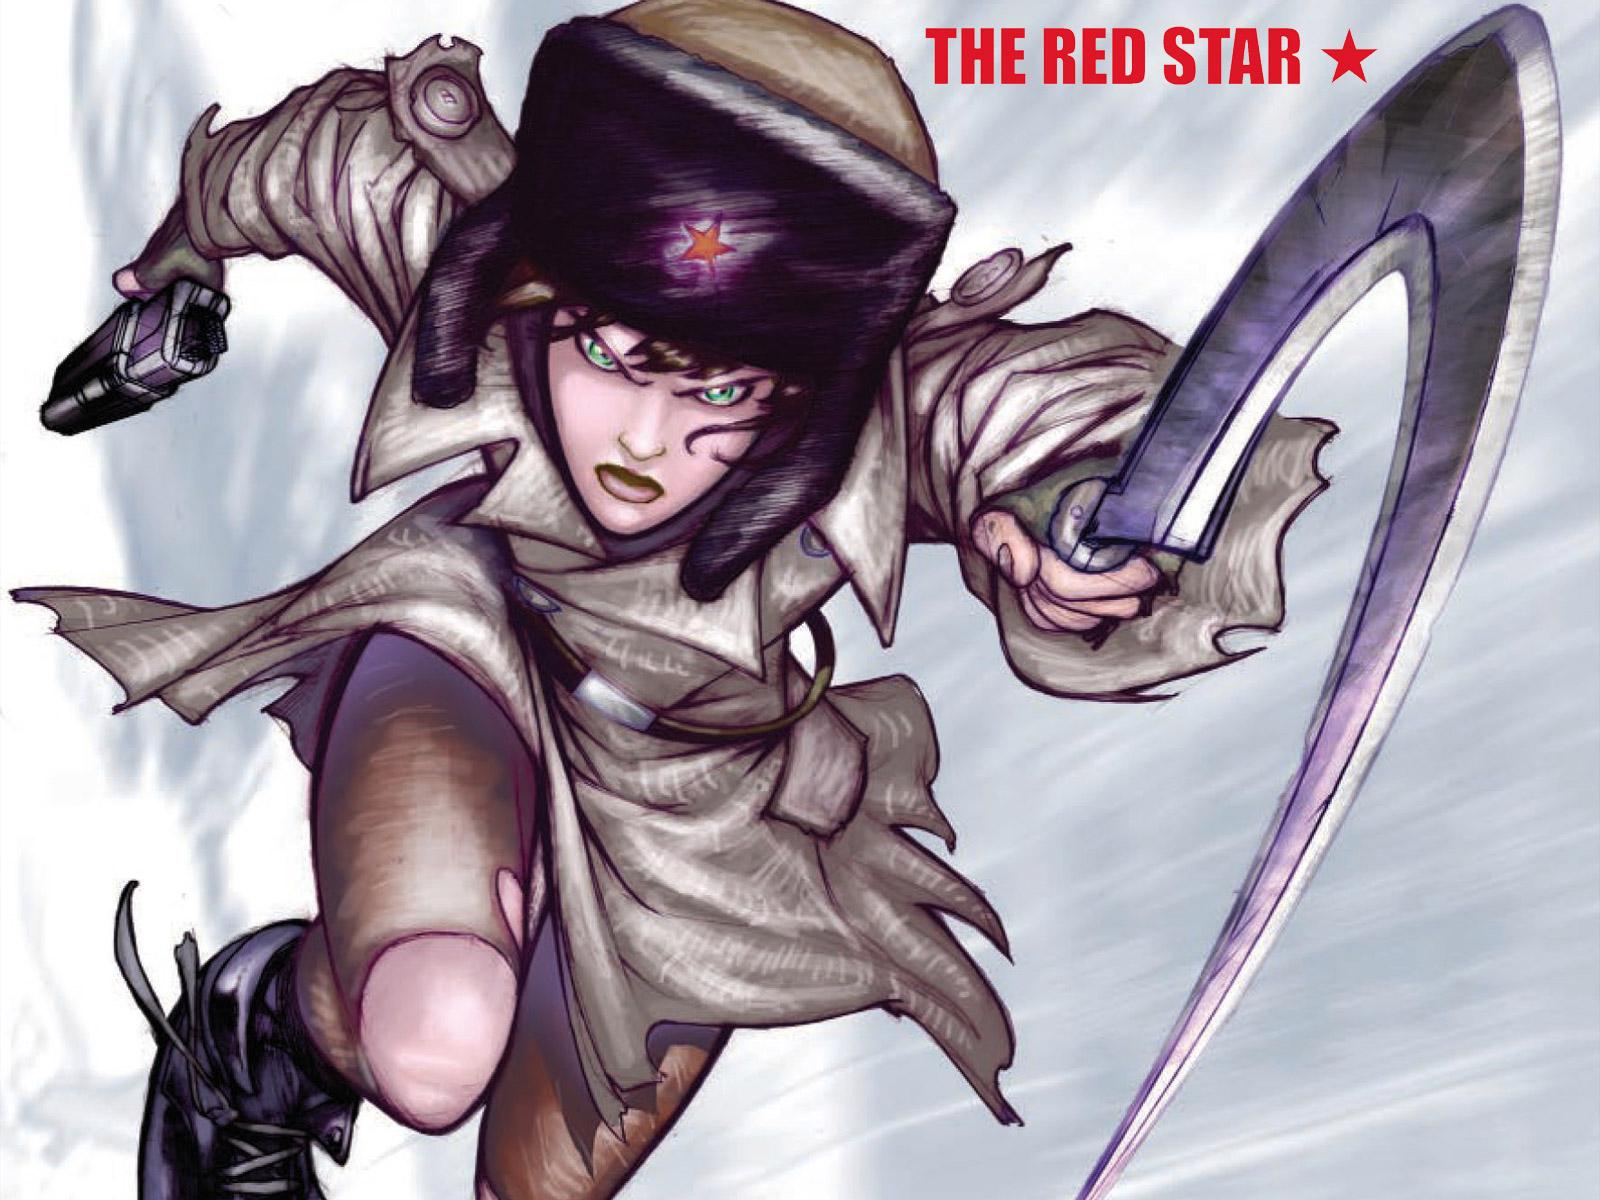 Обои The Red Star 1600x1200